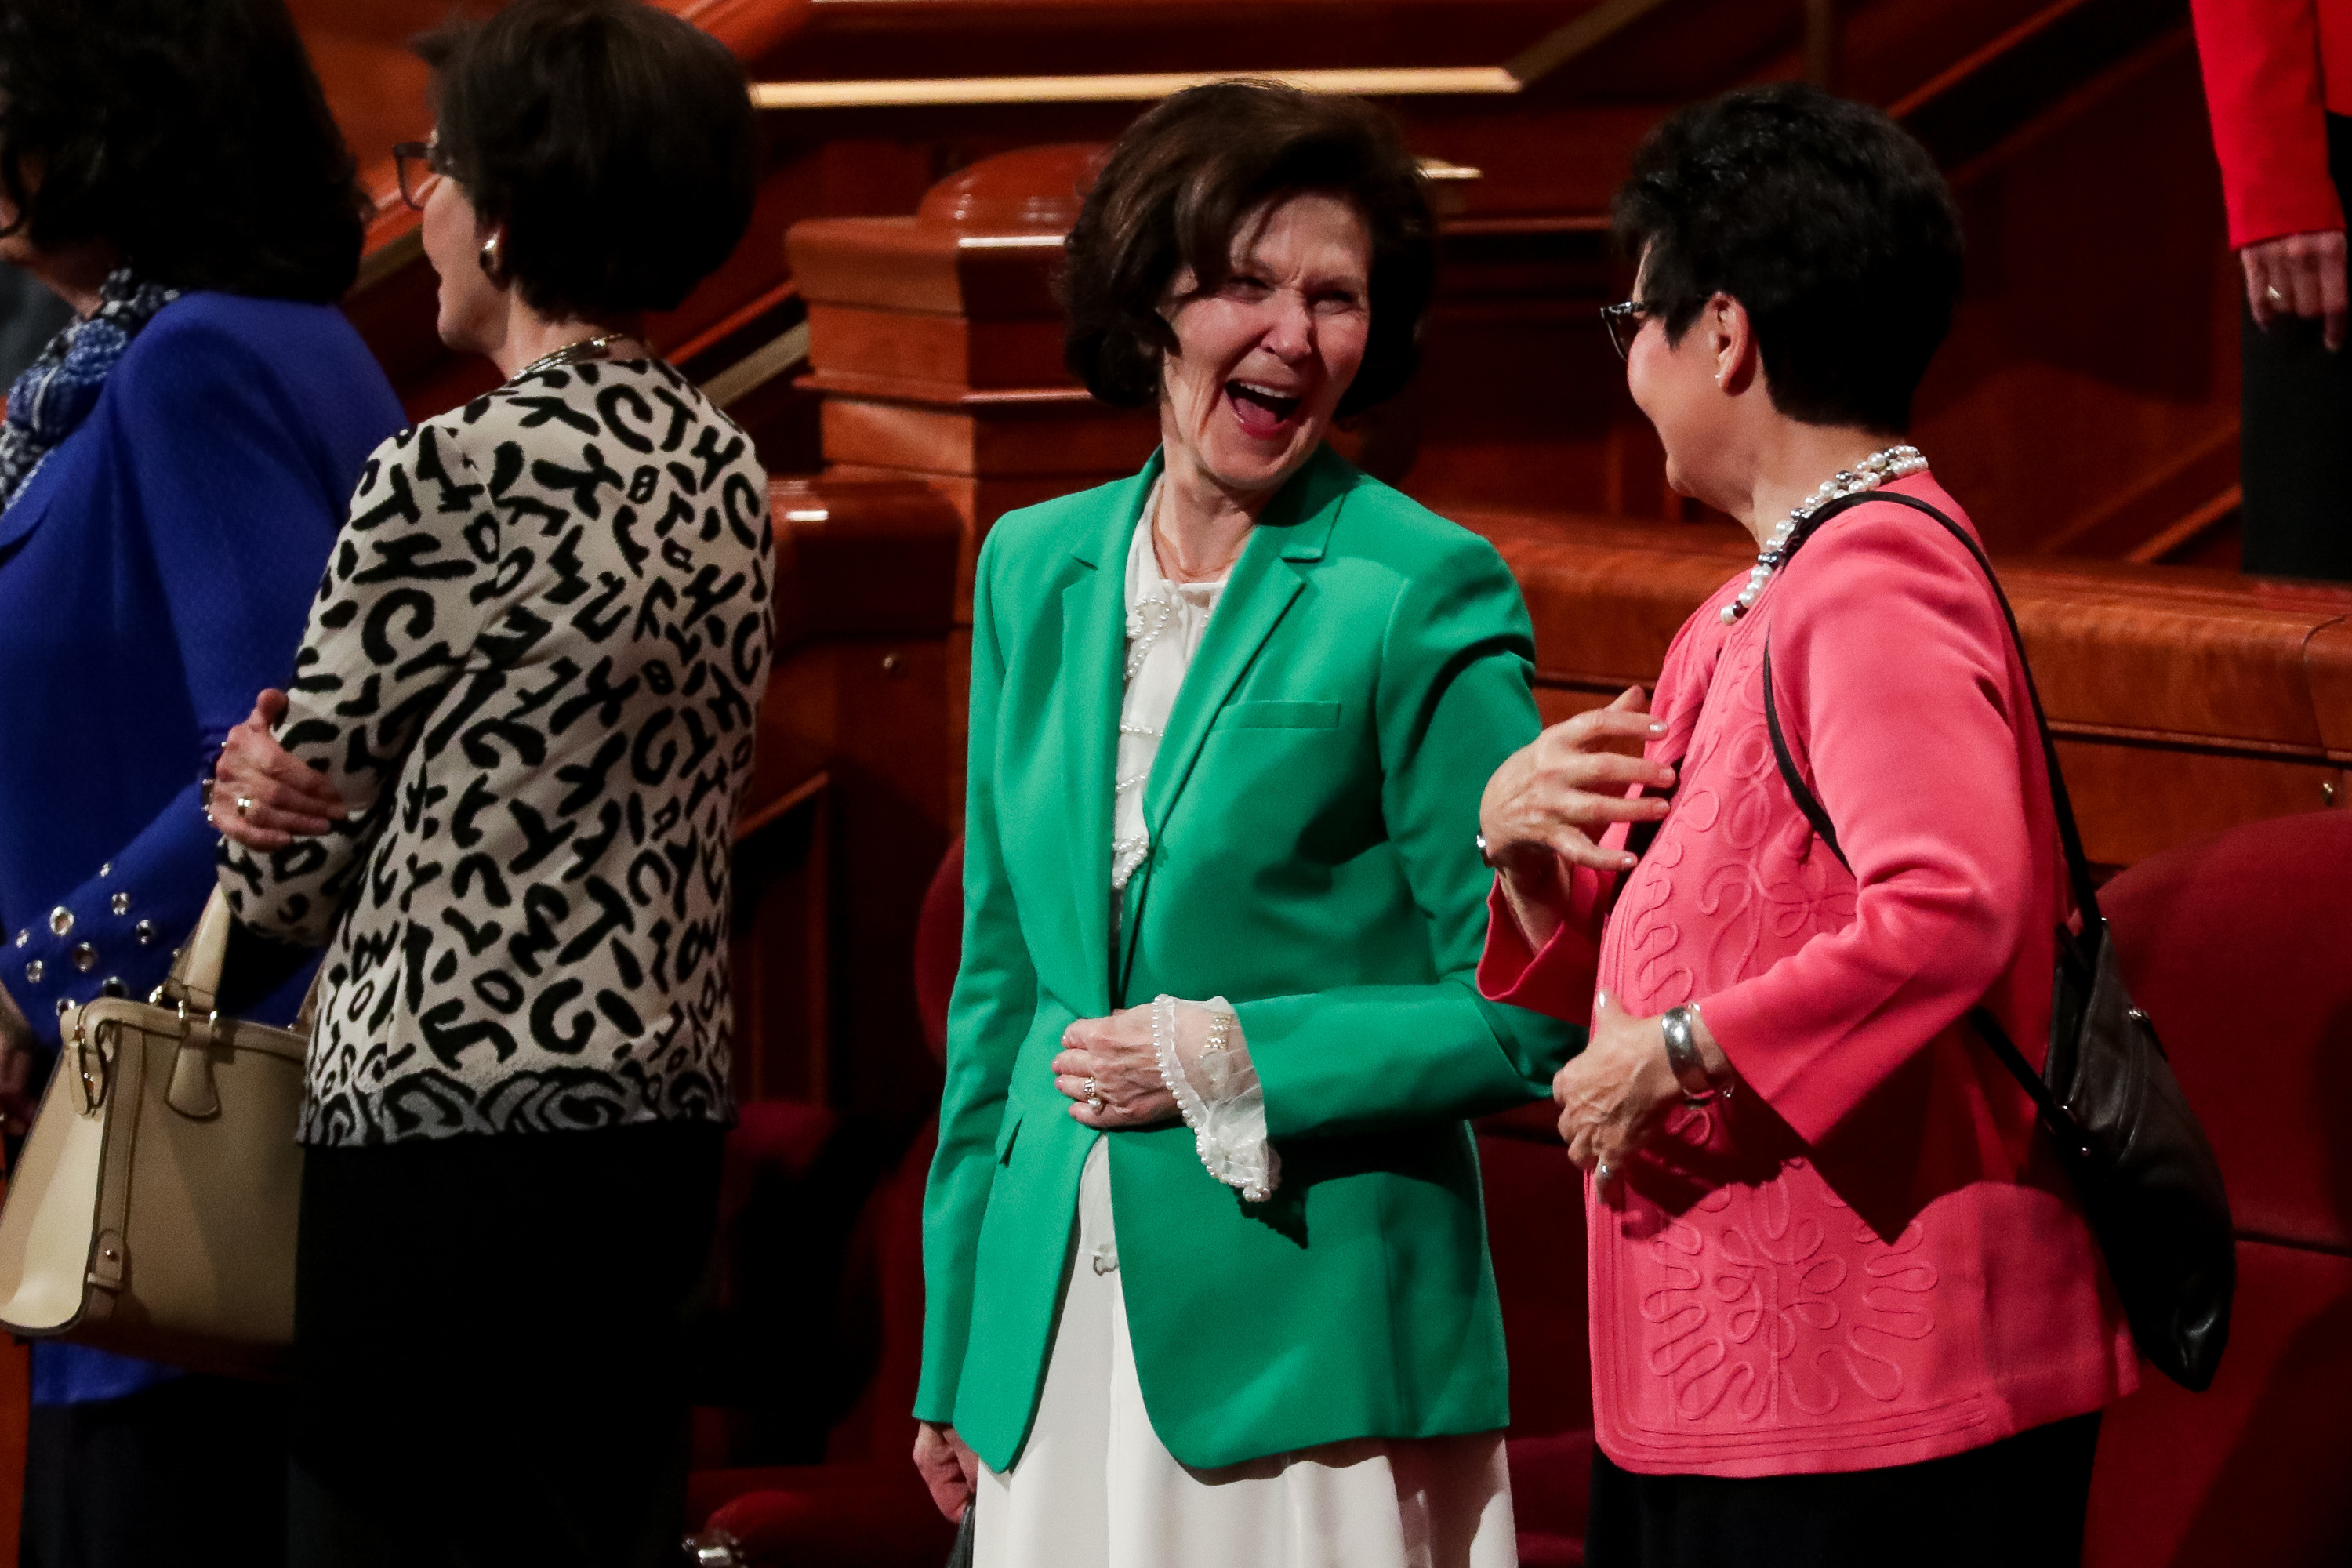 Sister Patricia Holland, wife of Elder Jeffrey R. Holland, and Sister Harriet Uchtdorf, wife of Elder Dieter F. Uchtdorf, right, chat at the end of the Saturday afternoon session of the 188th Semiannual General Conference of The Church of Jesus Christ of Latter-day Saints in the Conference Center in Salt Lake City on Saturday, Oct. 6, 2018.